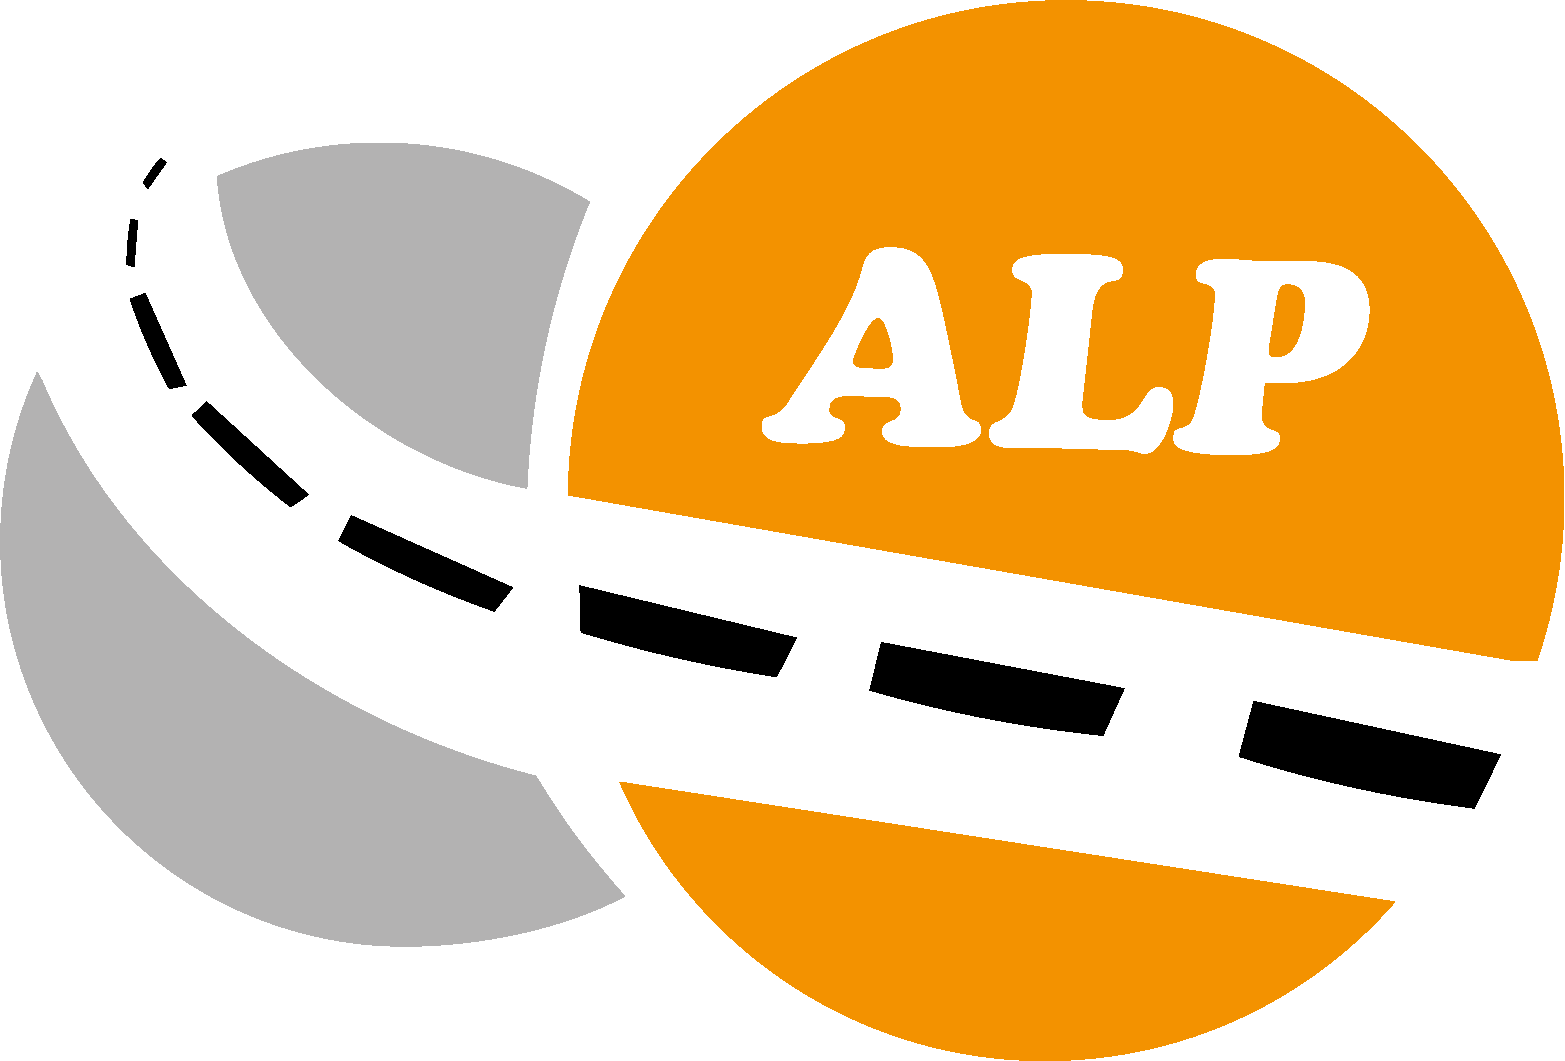 accesorios del automovil - Alp Car Accessories